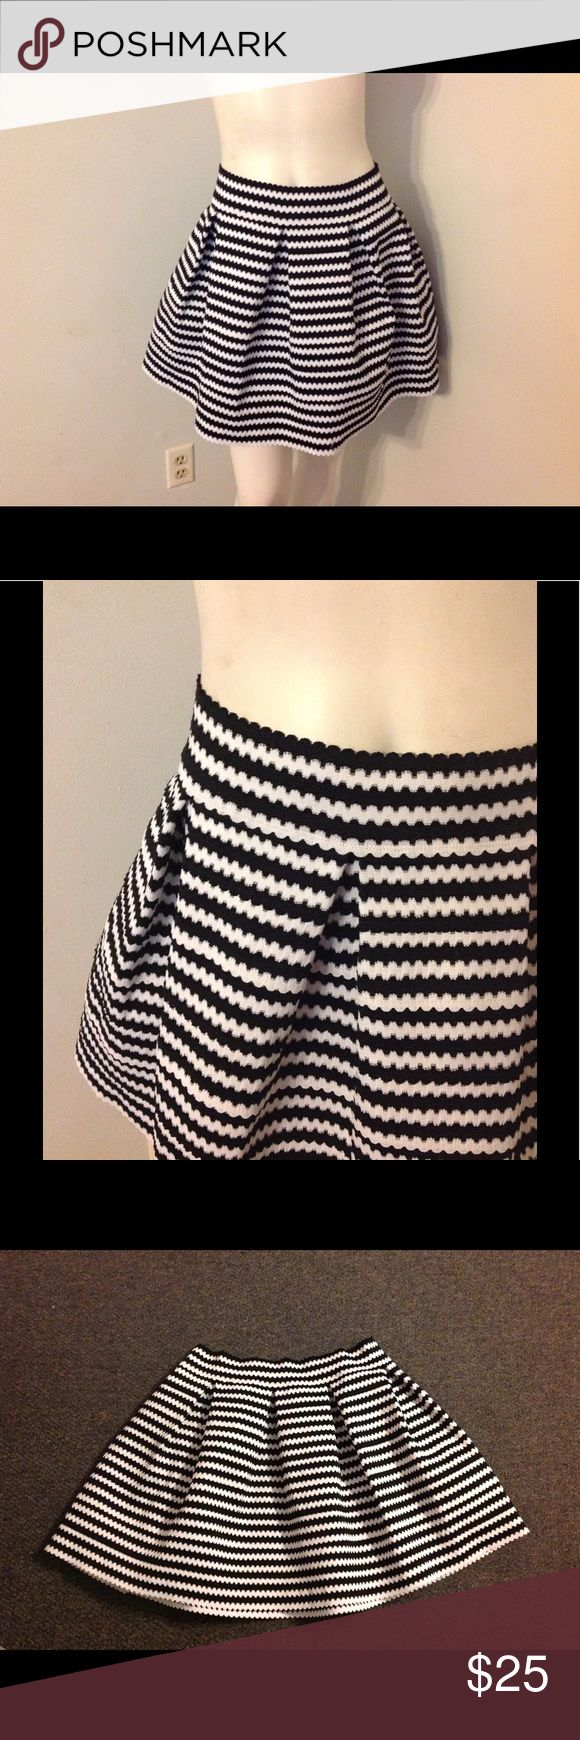 Express Black White Stripe Full Circle Skirt L Cute Express Skirt - black and white stripe. Fabric is stretchy. Marked size Large. I bought this but never wore it. Express Skirts